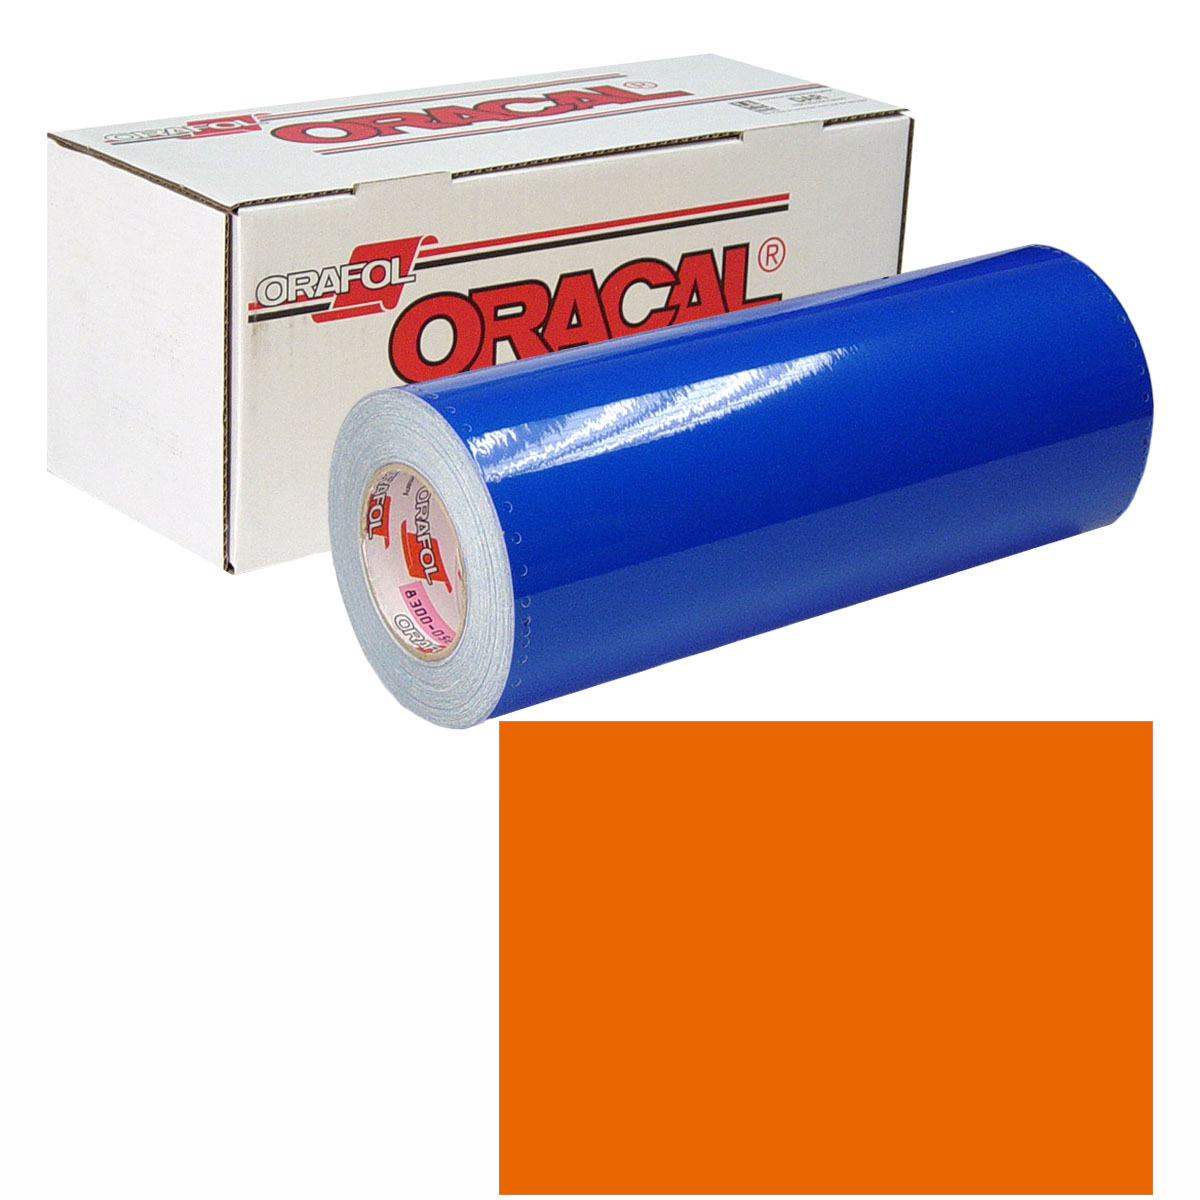 ORACAL 631 Unp 30In X 10Yd 036 Light Orange